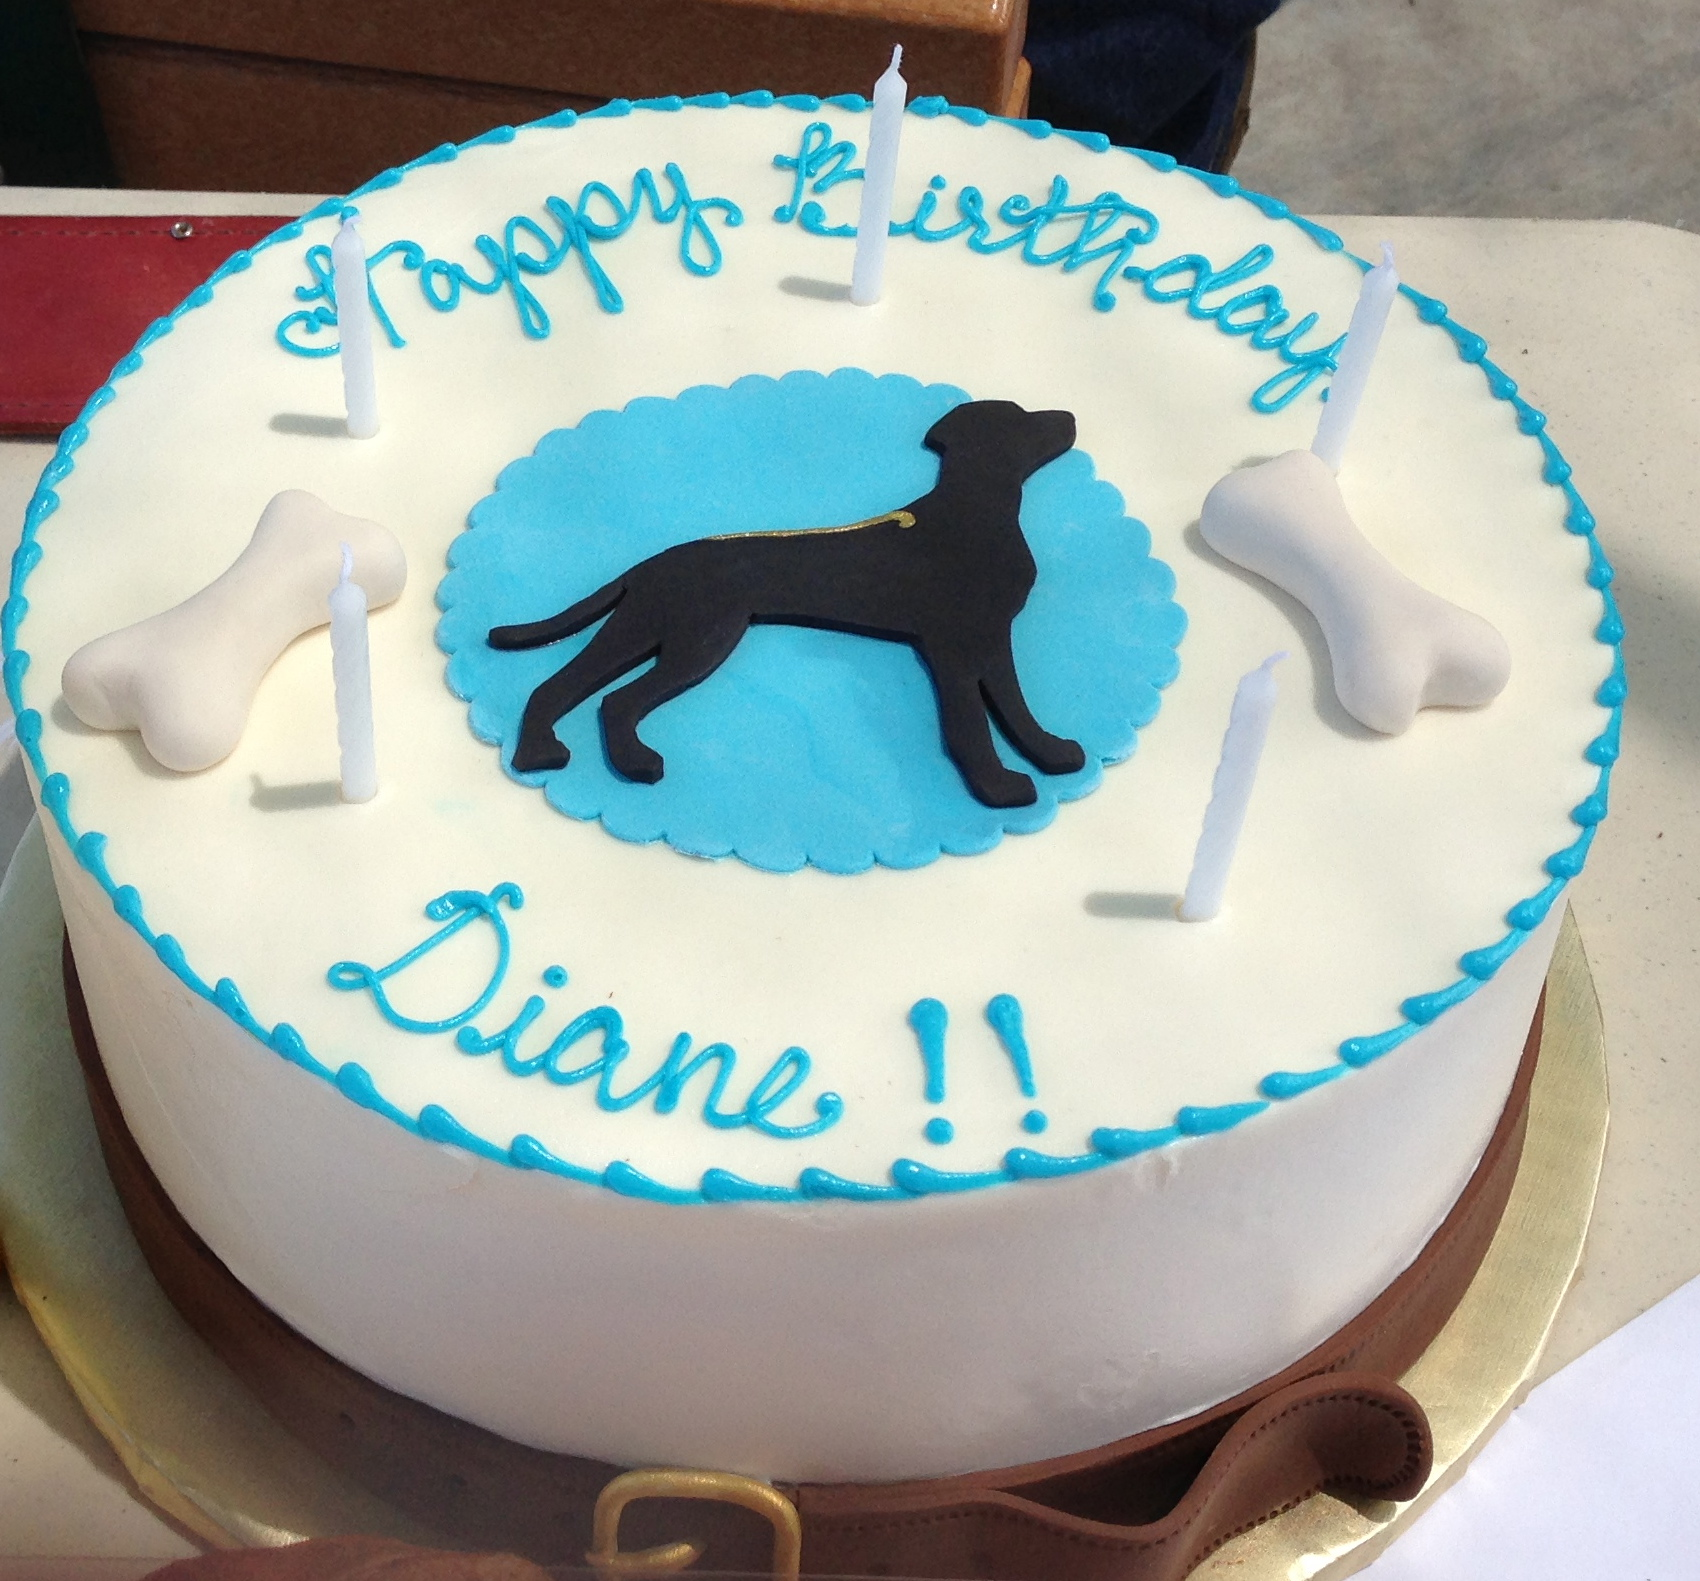 A special birthday cake was made for the president of a dog club.